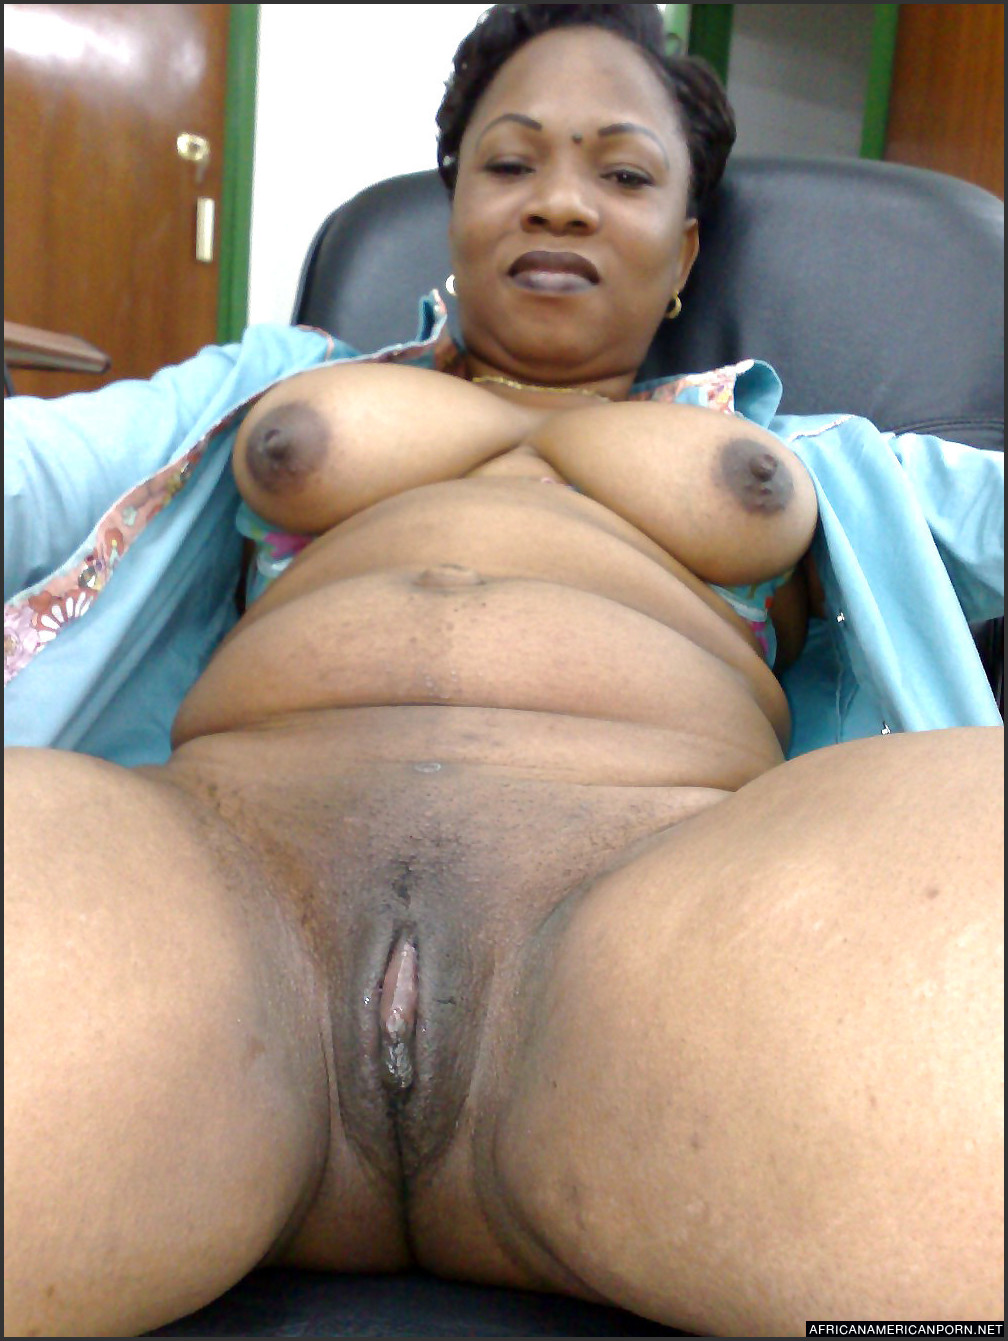 black amateur whore - Private Photos And Videos Of Real Black Girlfriends In Hardcore Action »  Submitted amateur black porn photos and videos you can find only here